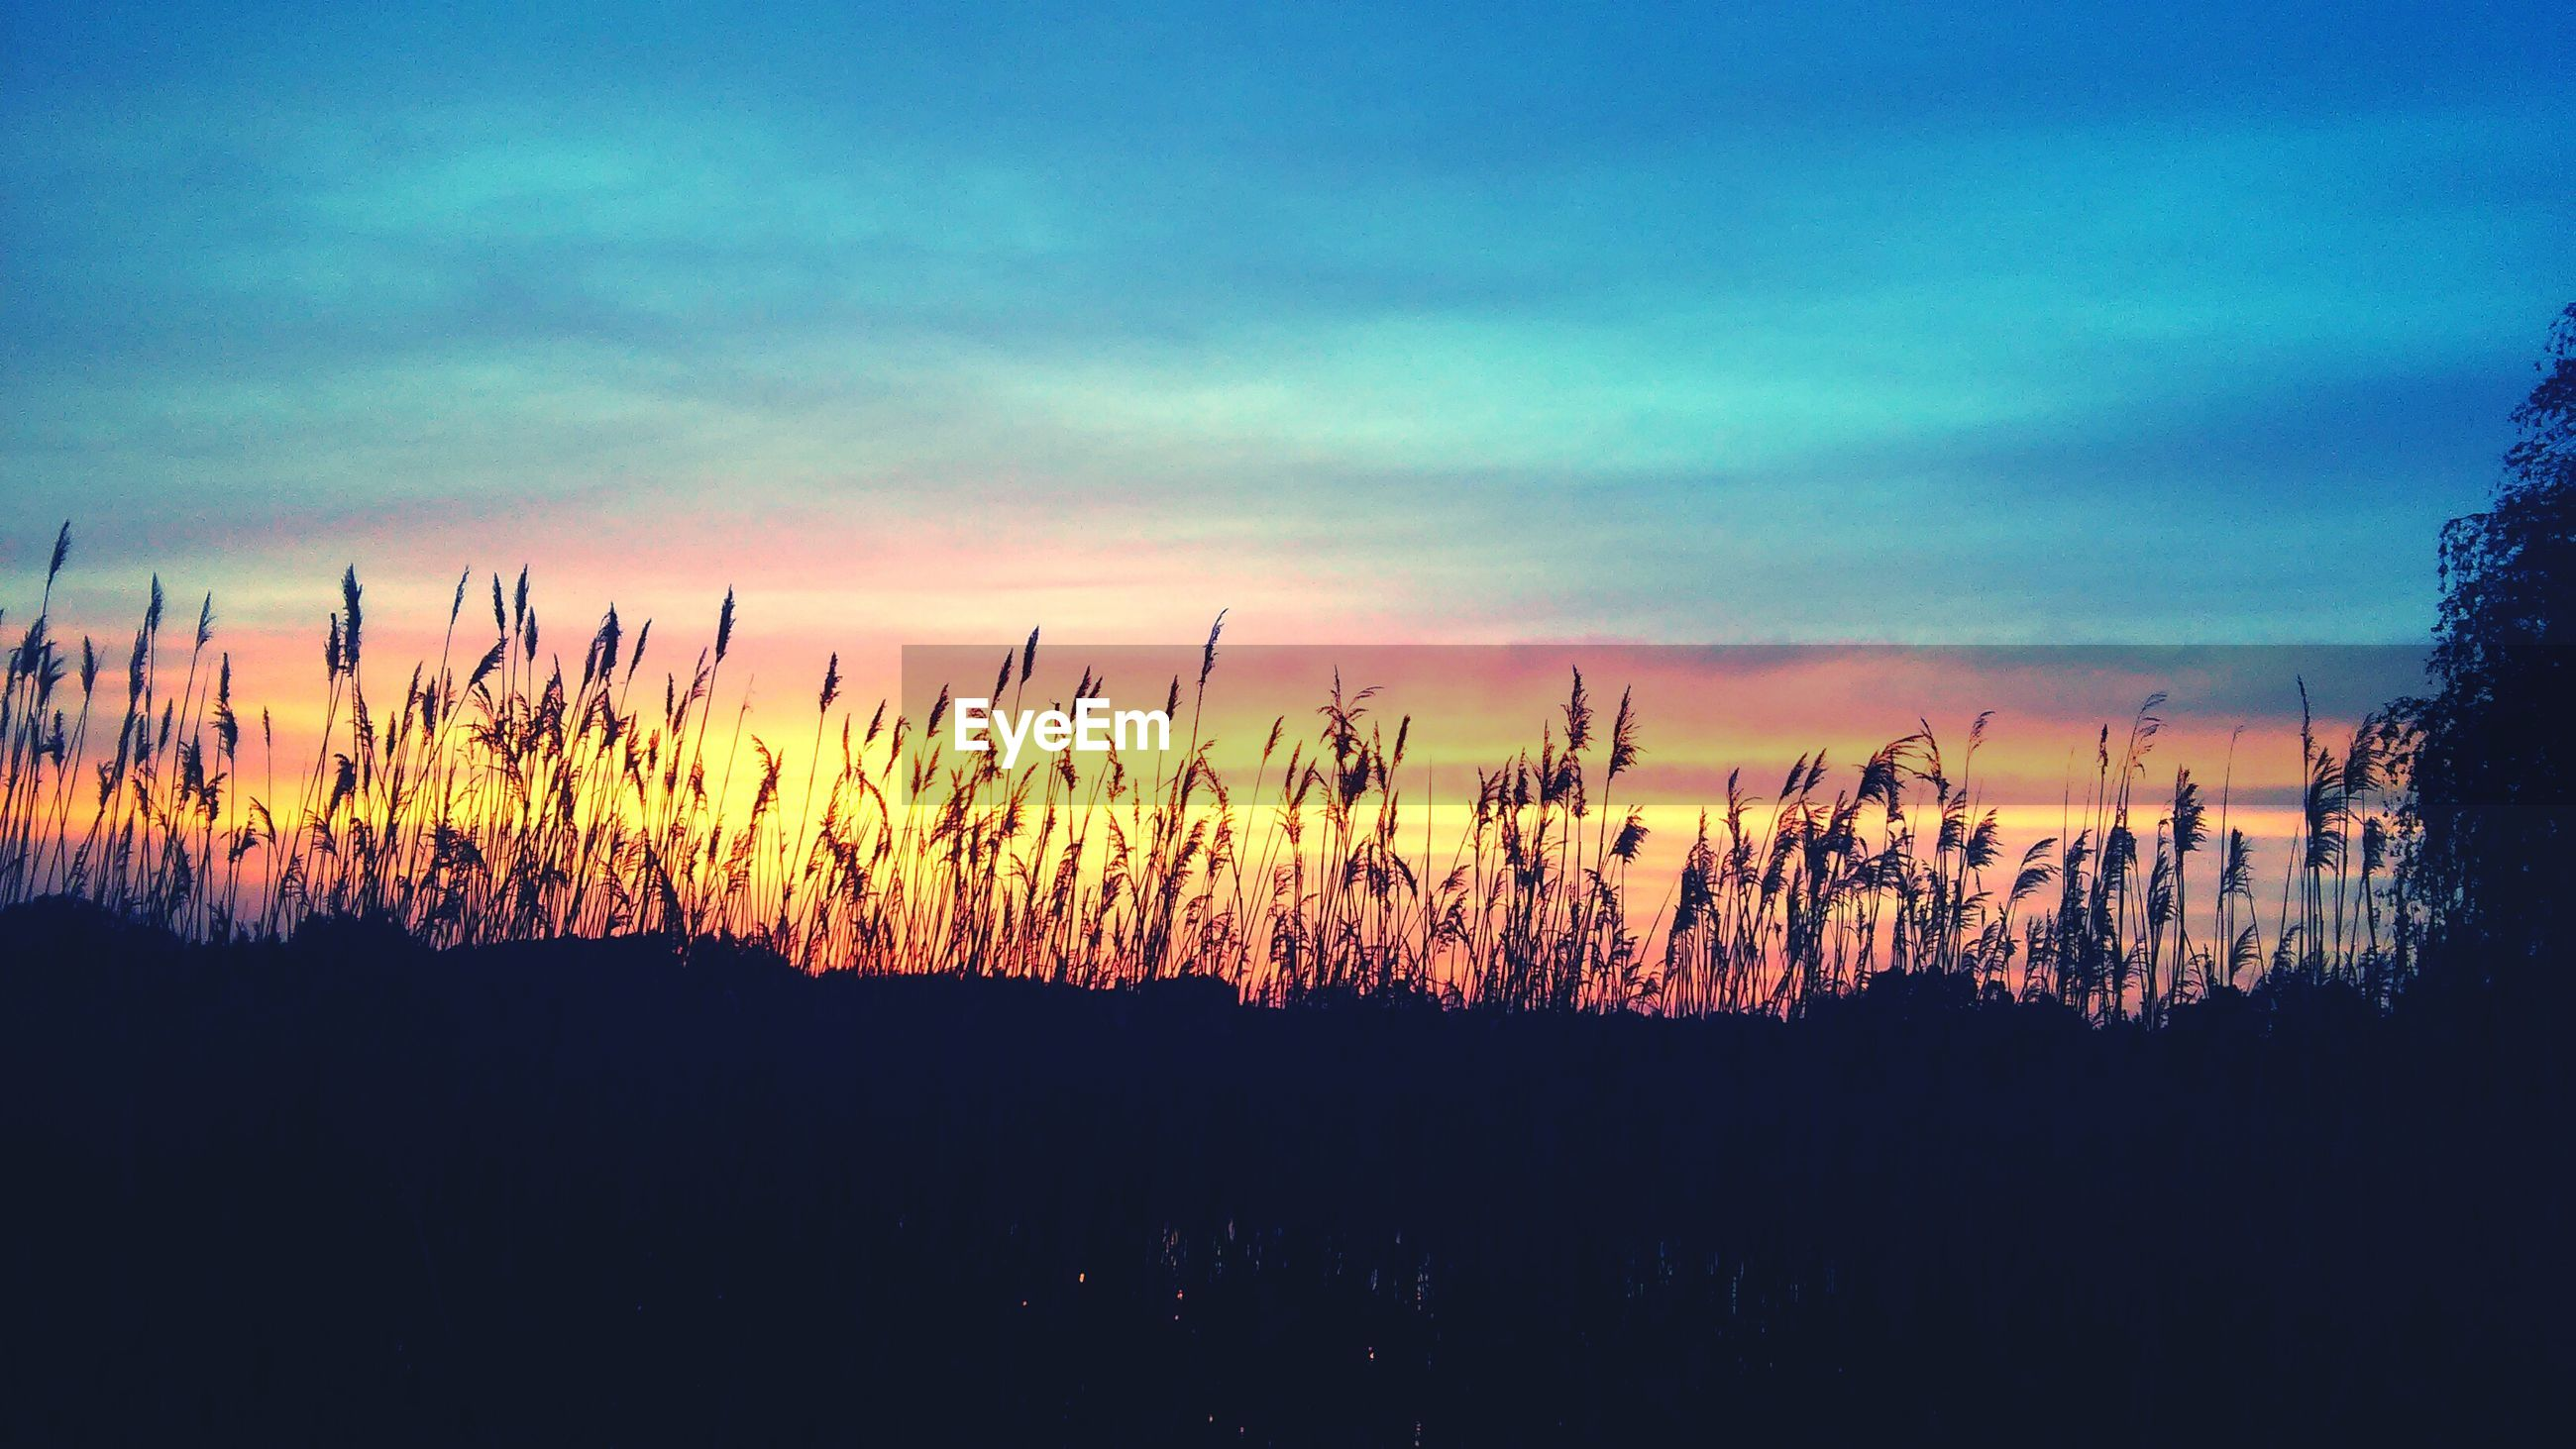 sunset, silhouette, sky, beauty in nature, tranquility, plant, growth, nature, field, tranquil scene, scenics, cloud - sky, landscape, dusk, cloud, stem, idyllic, outdoors, no people, focus on foreground